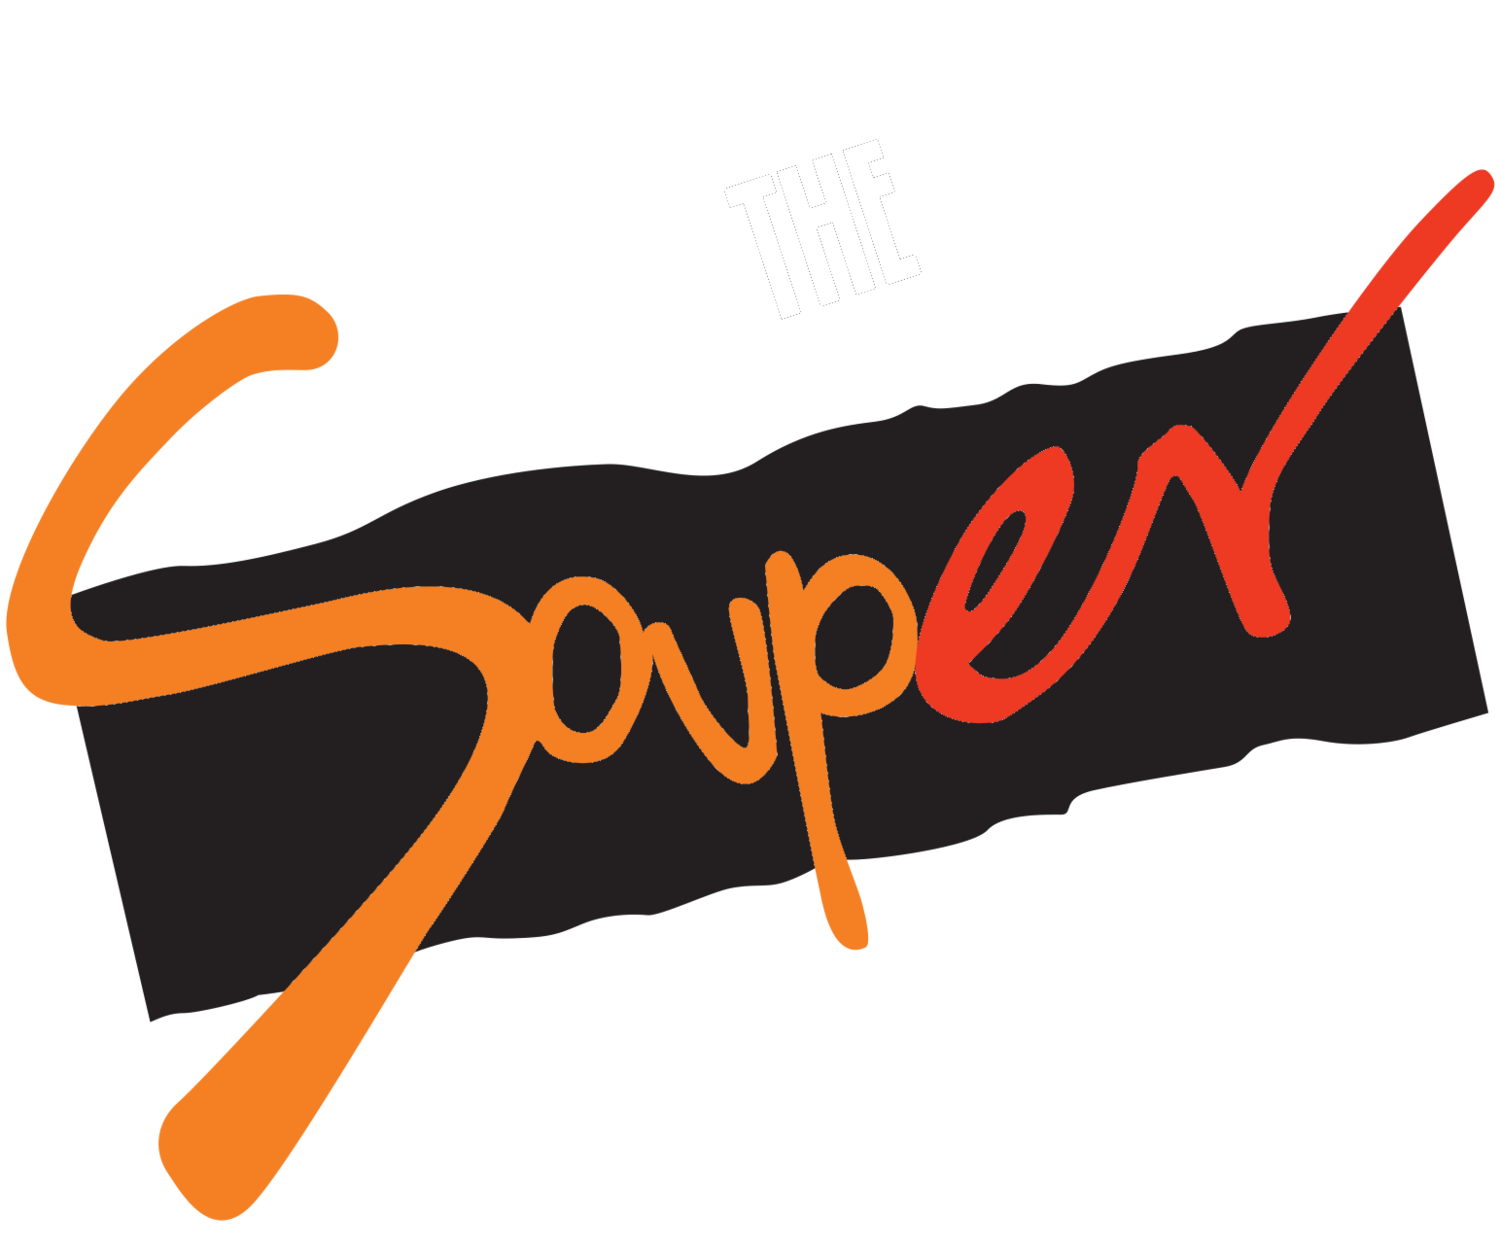 The Souper Cafe